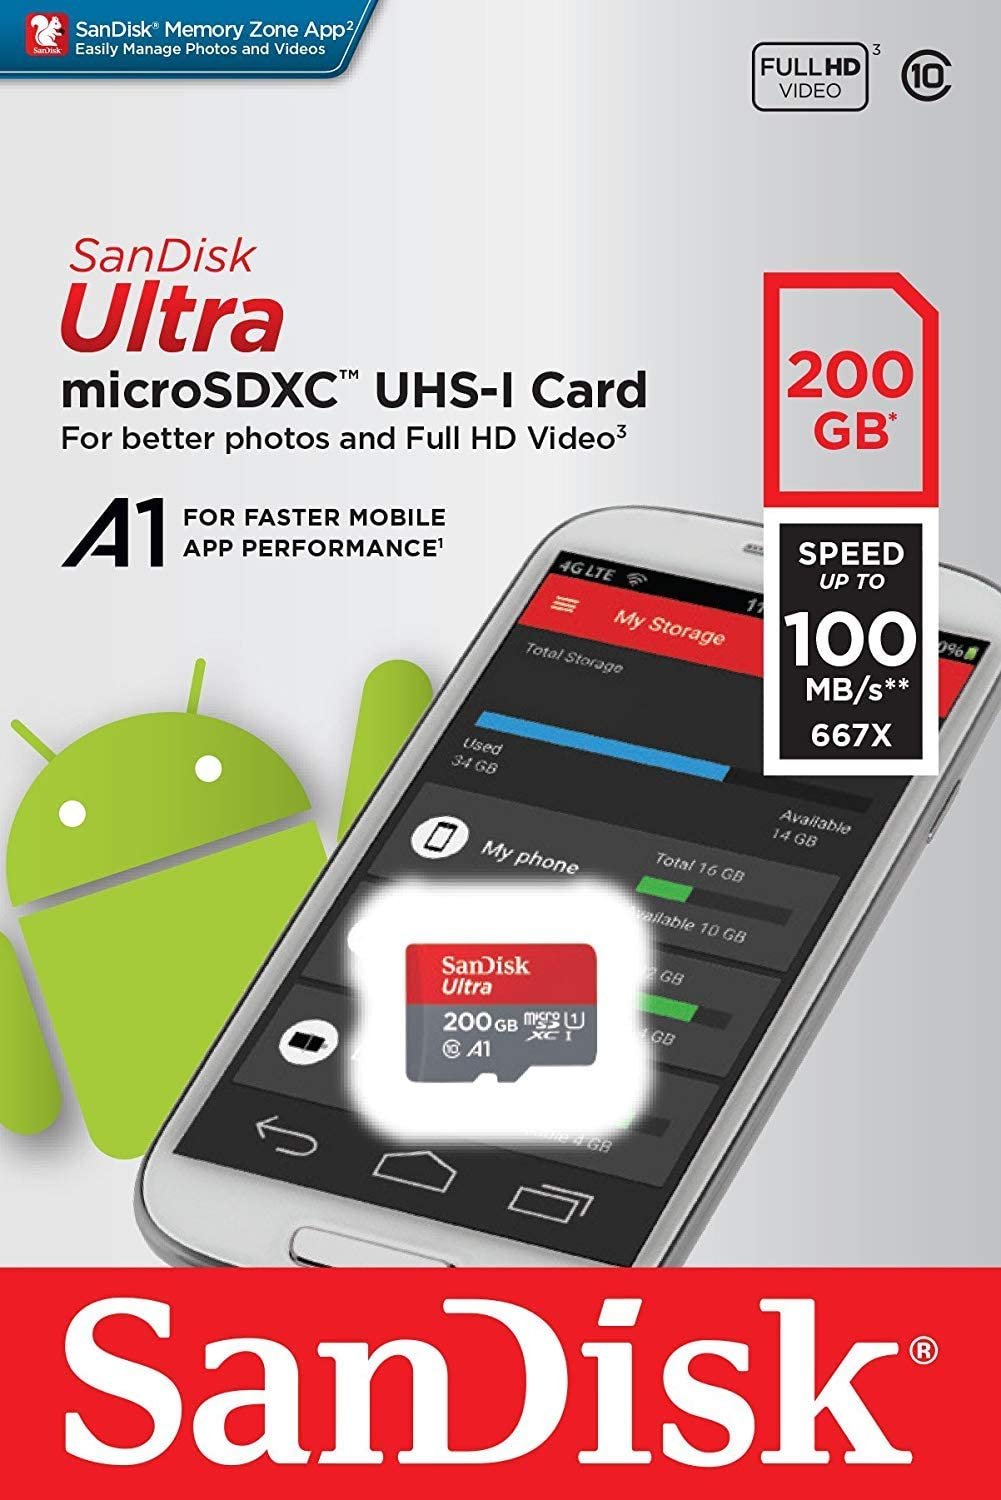 SanDisk Ultra 200GB MicroSDXC Verified for Asus ZE550KL by SanFlash 100MBs A1 U1 C10 Works with SanDisk